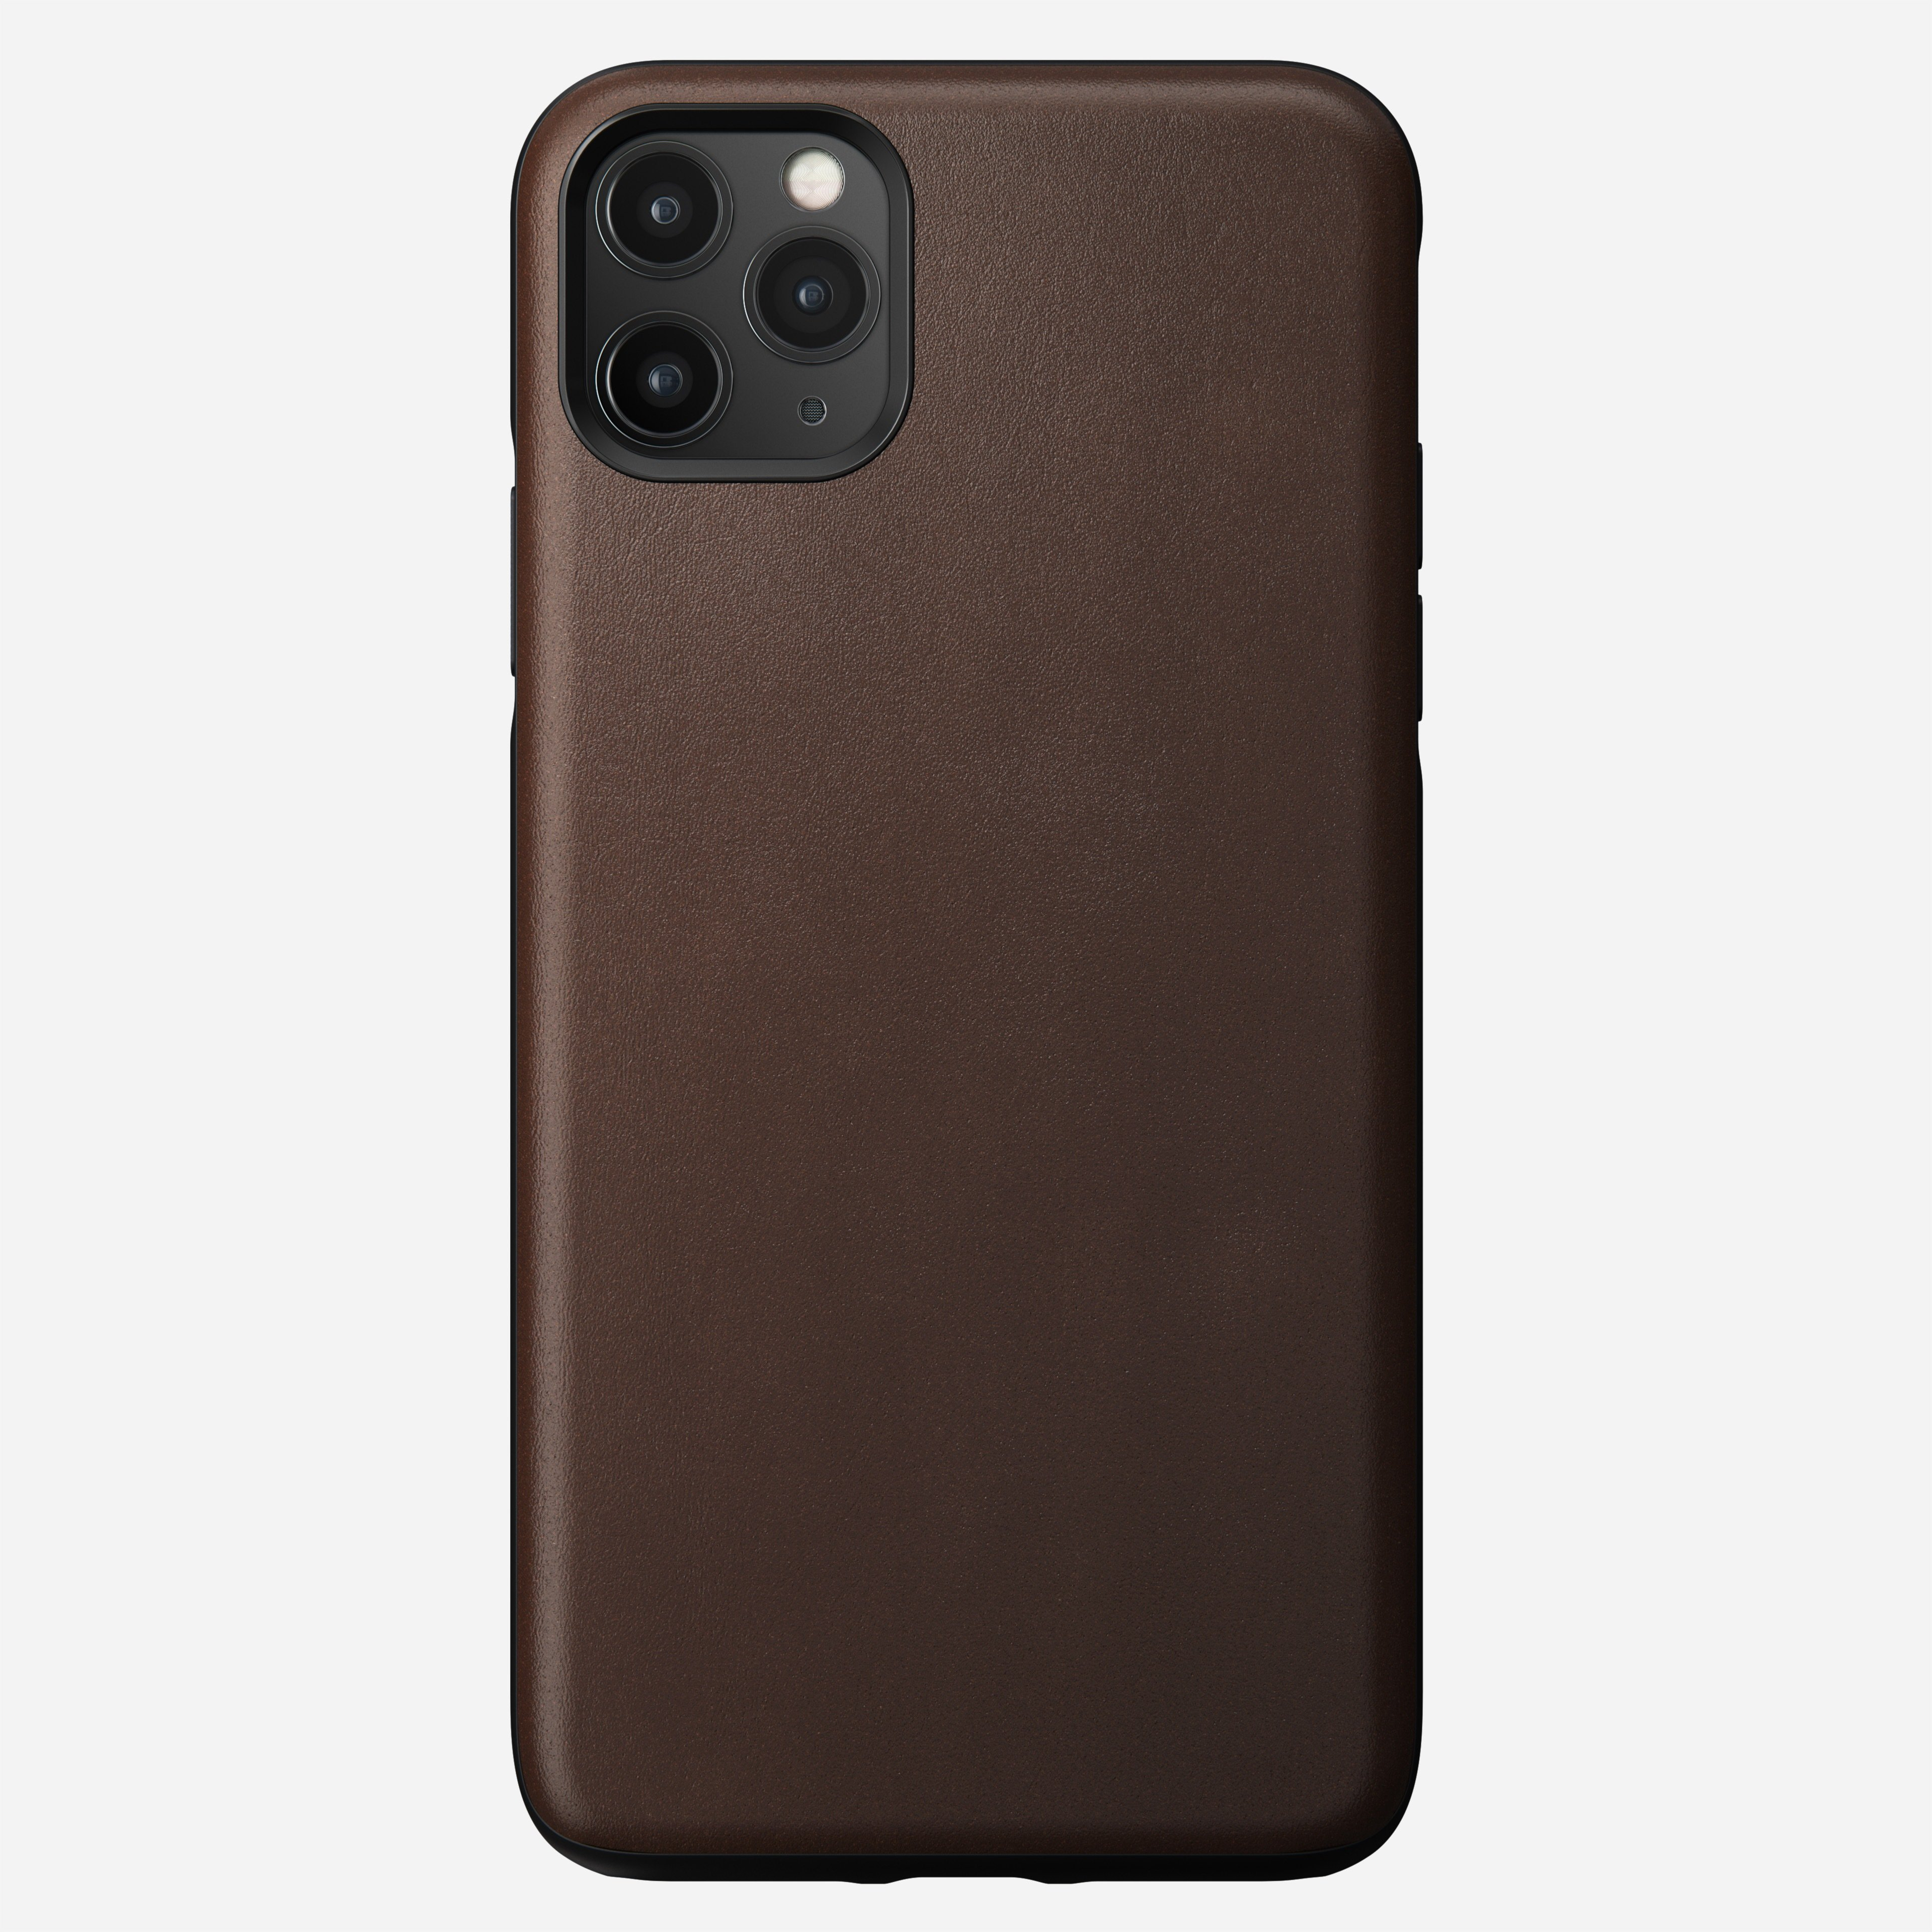 Rugged case rustic brown iphone 11 pro max